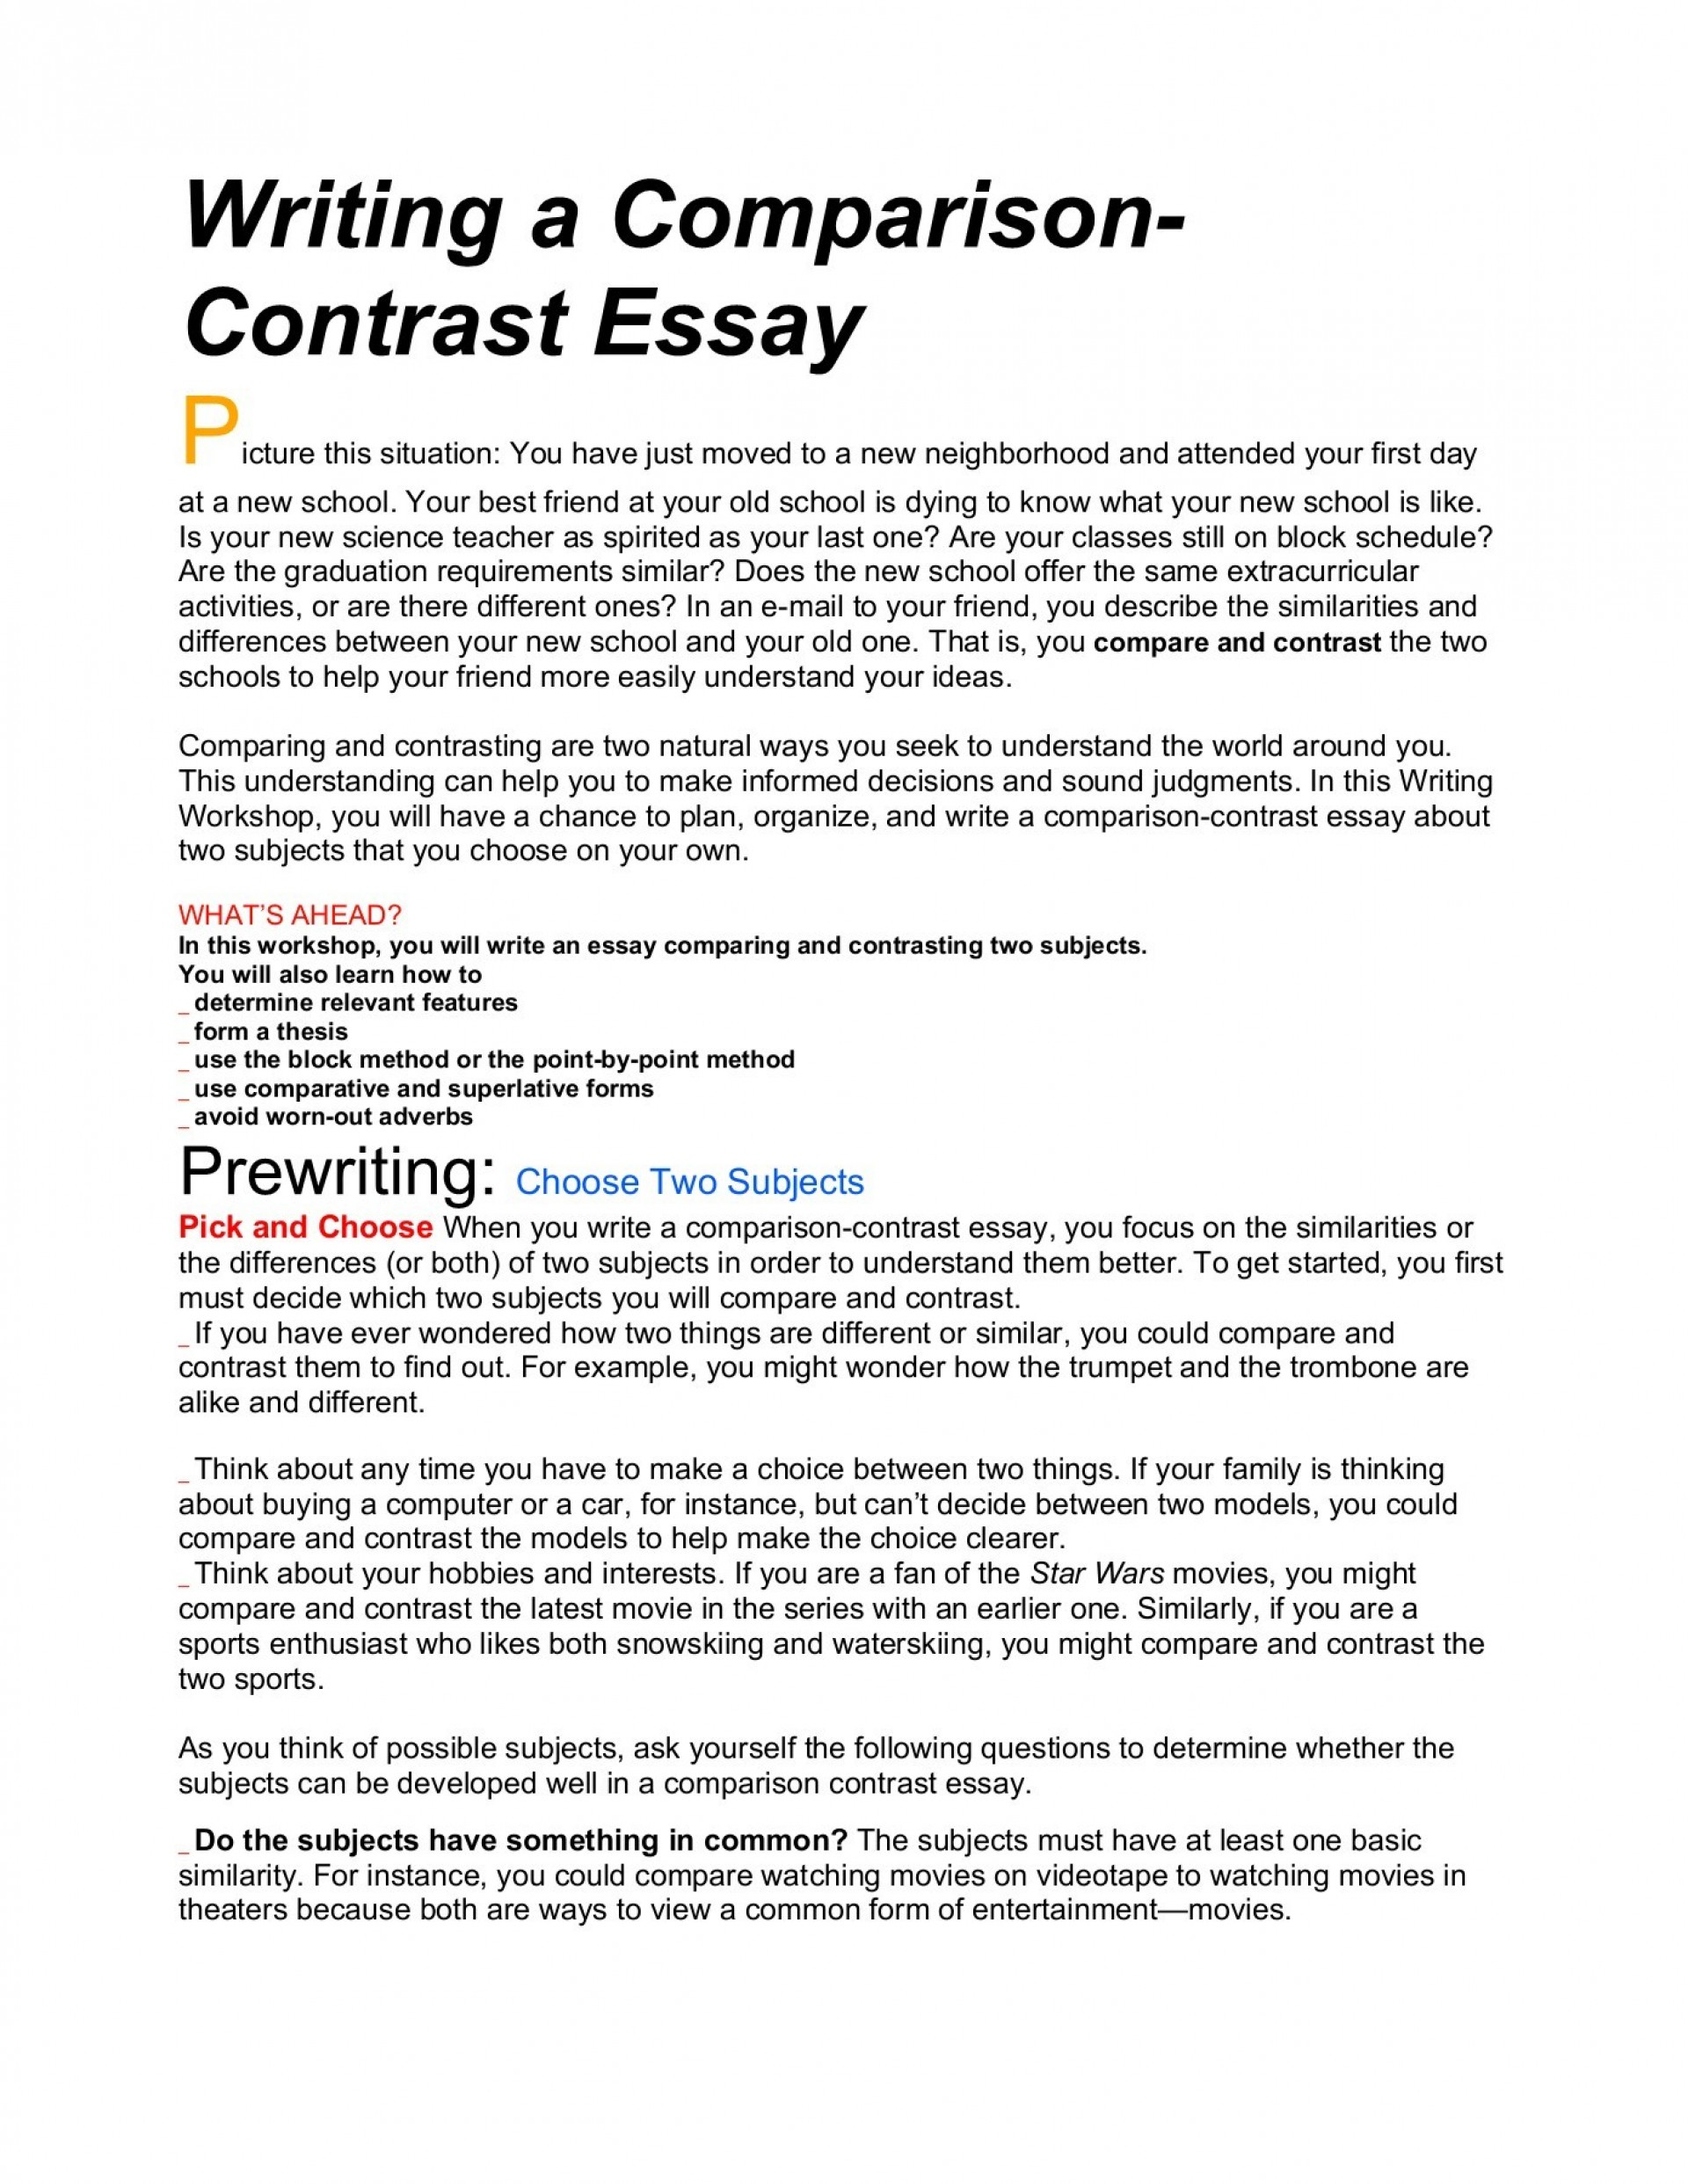 006 Essay Example Comparison And Awful Contrast Rubric Compare Template Word 1920